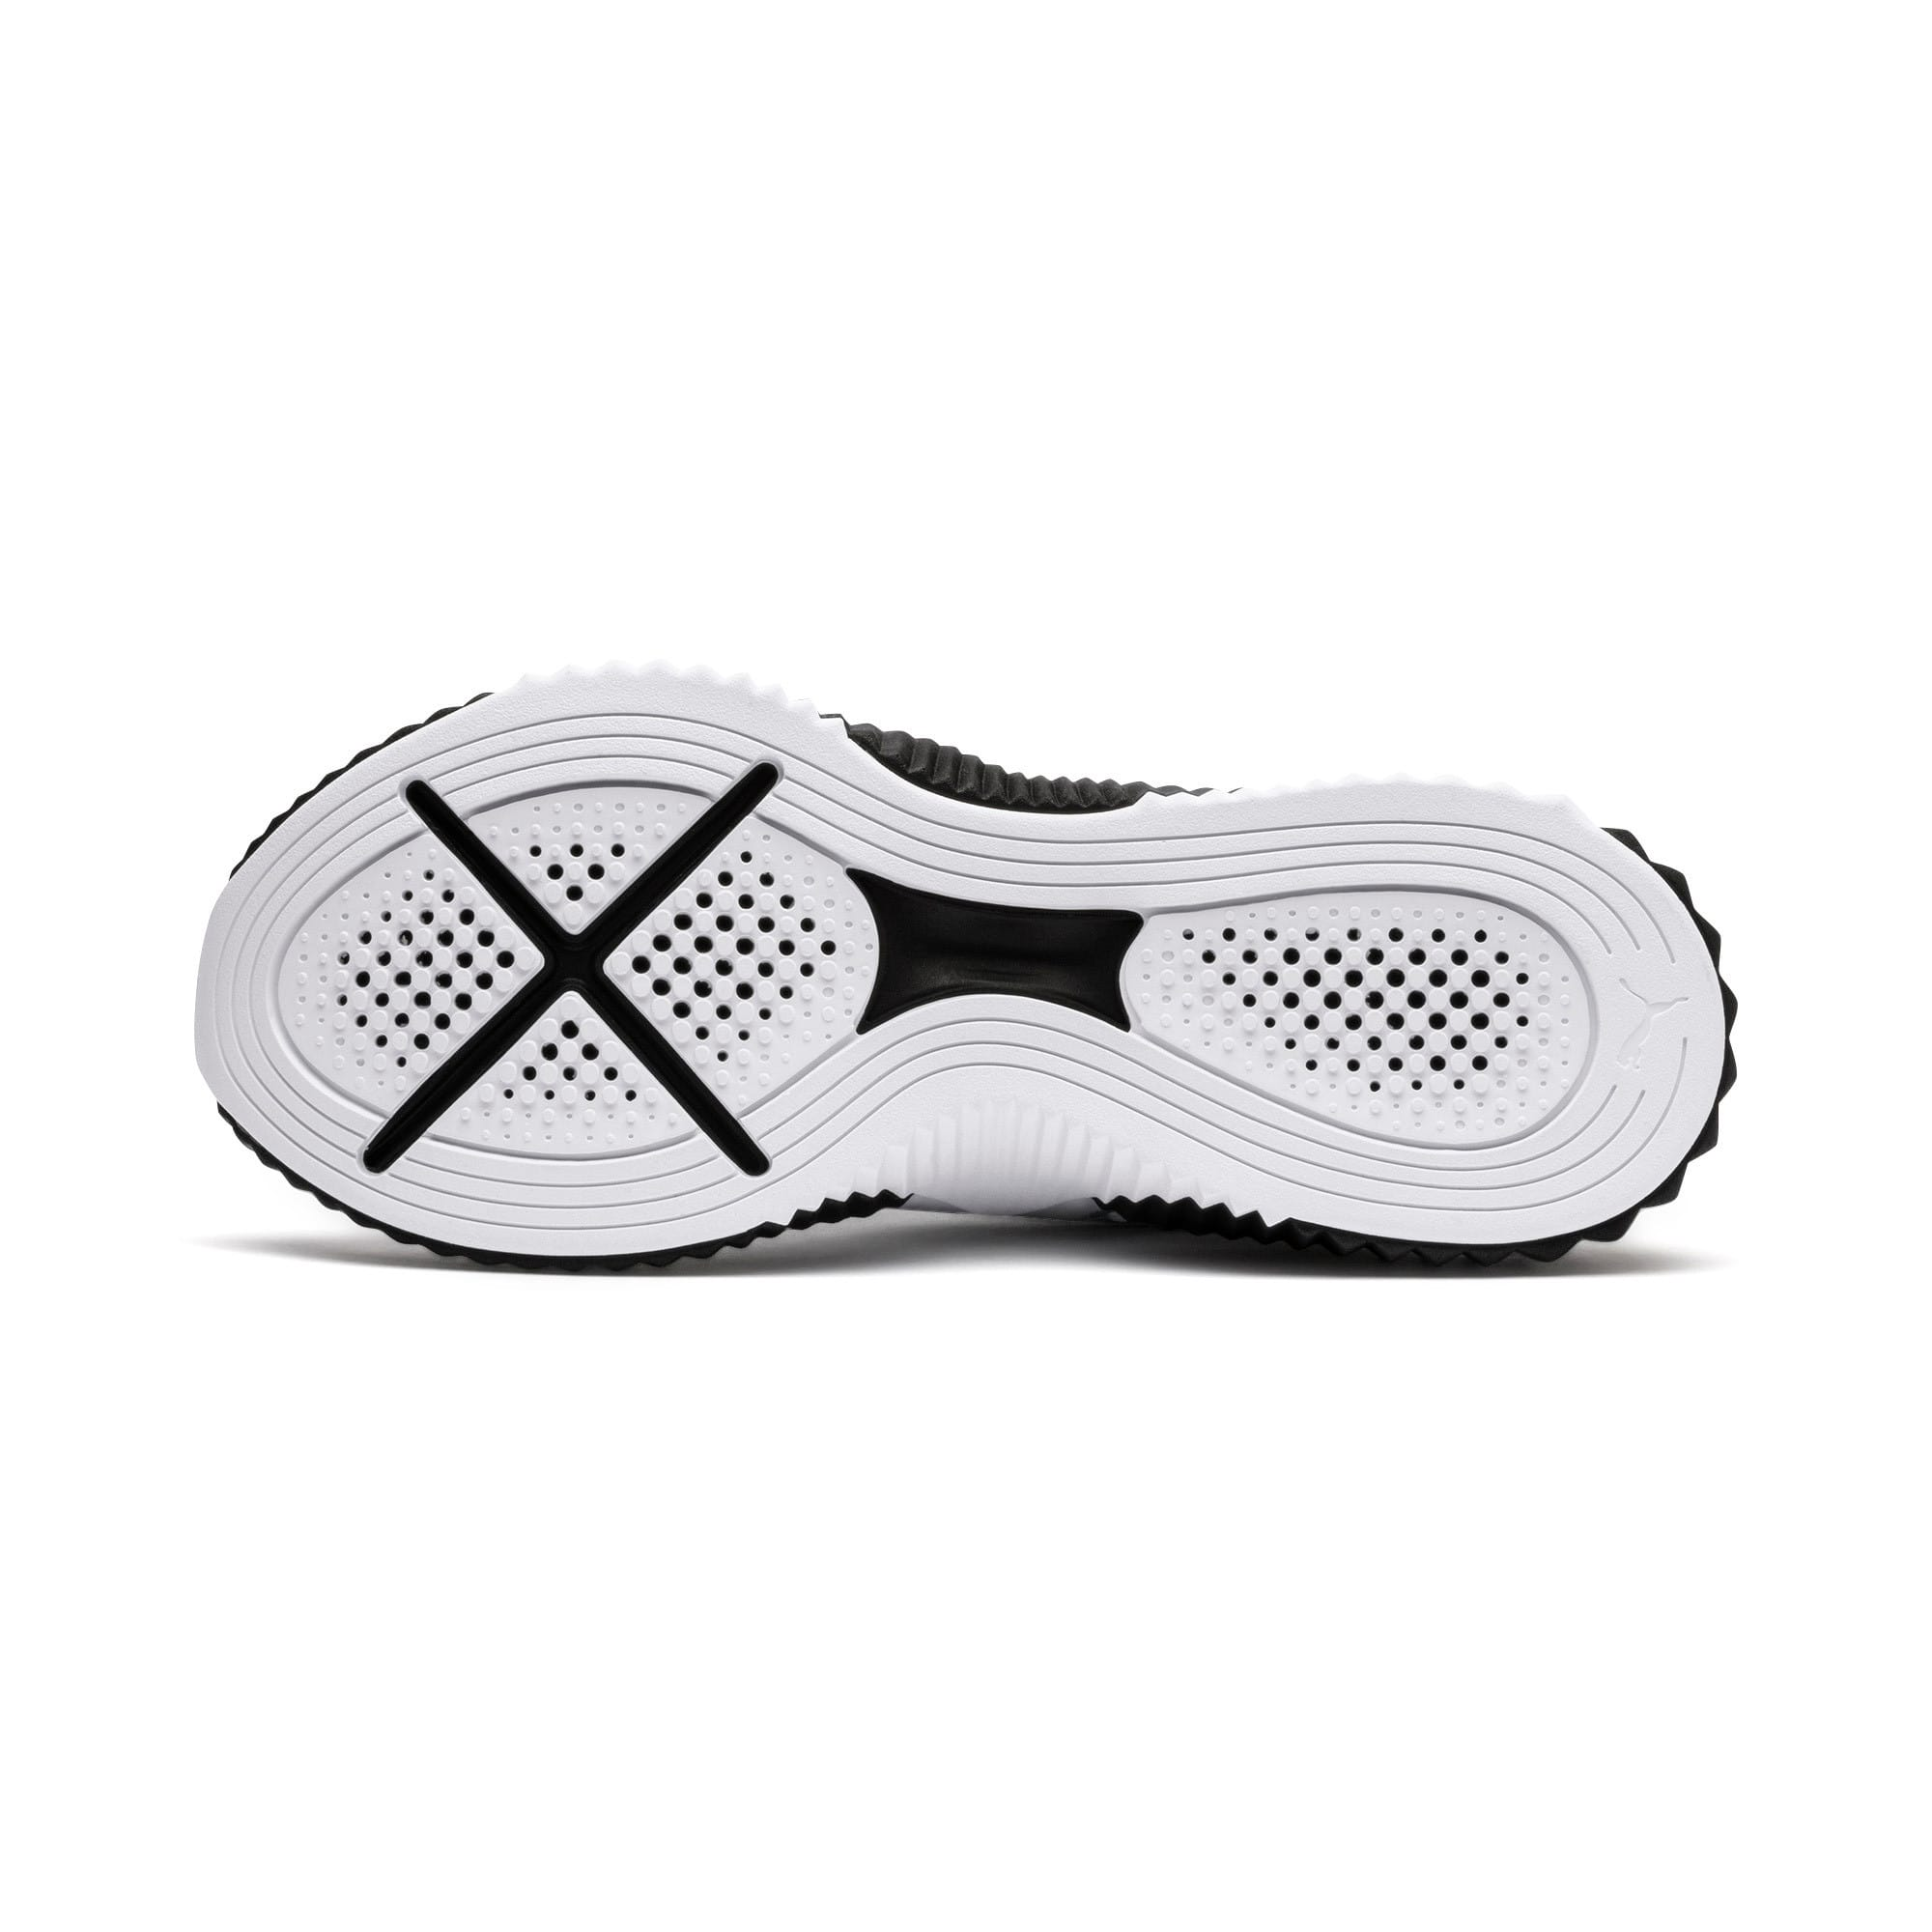 Thumbnail 3 of Defy Women's Training Shoes, Puma White-Puma Black, medium